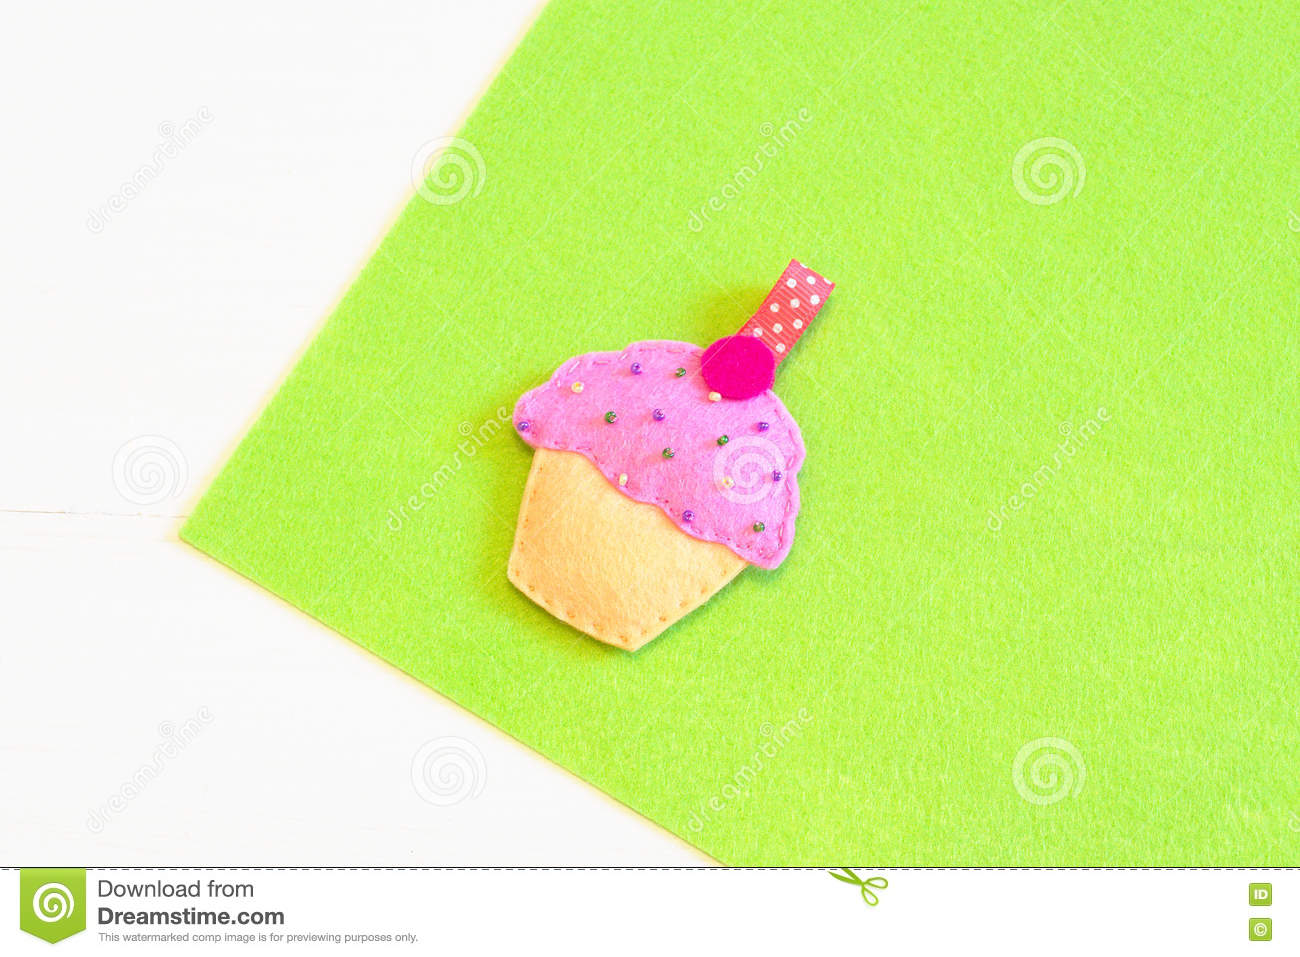 Felt Cupcake Sewing Step Sewing Instructions For Children And